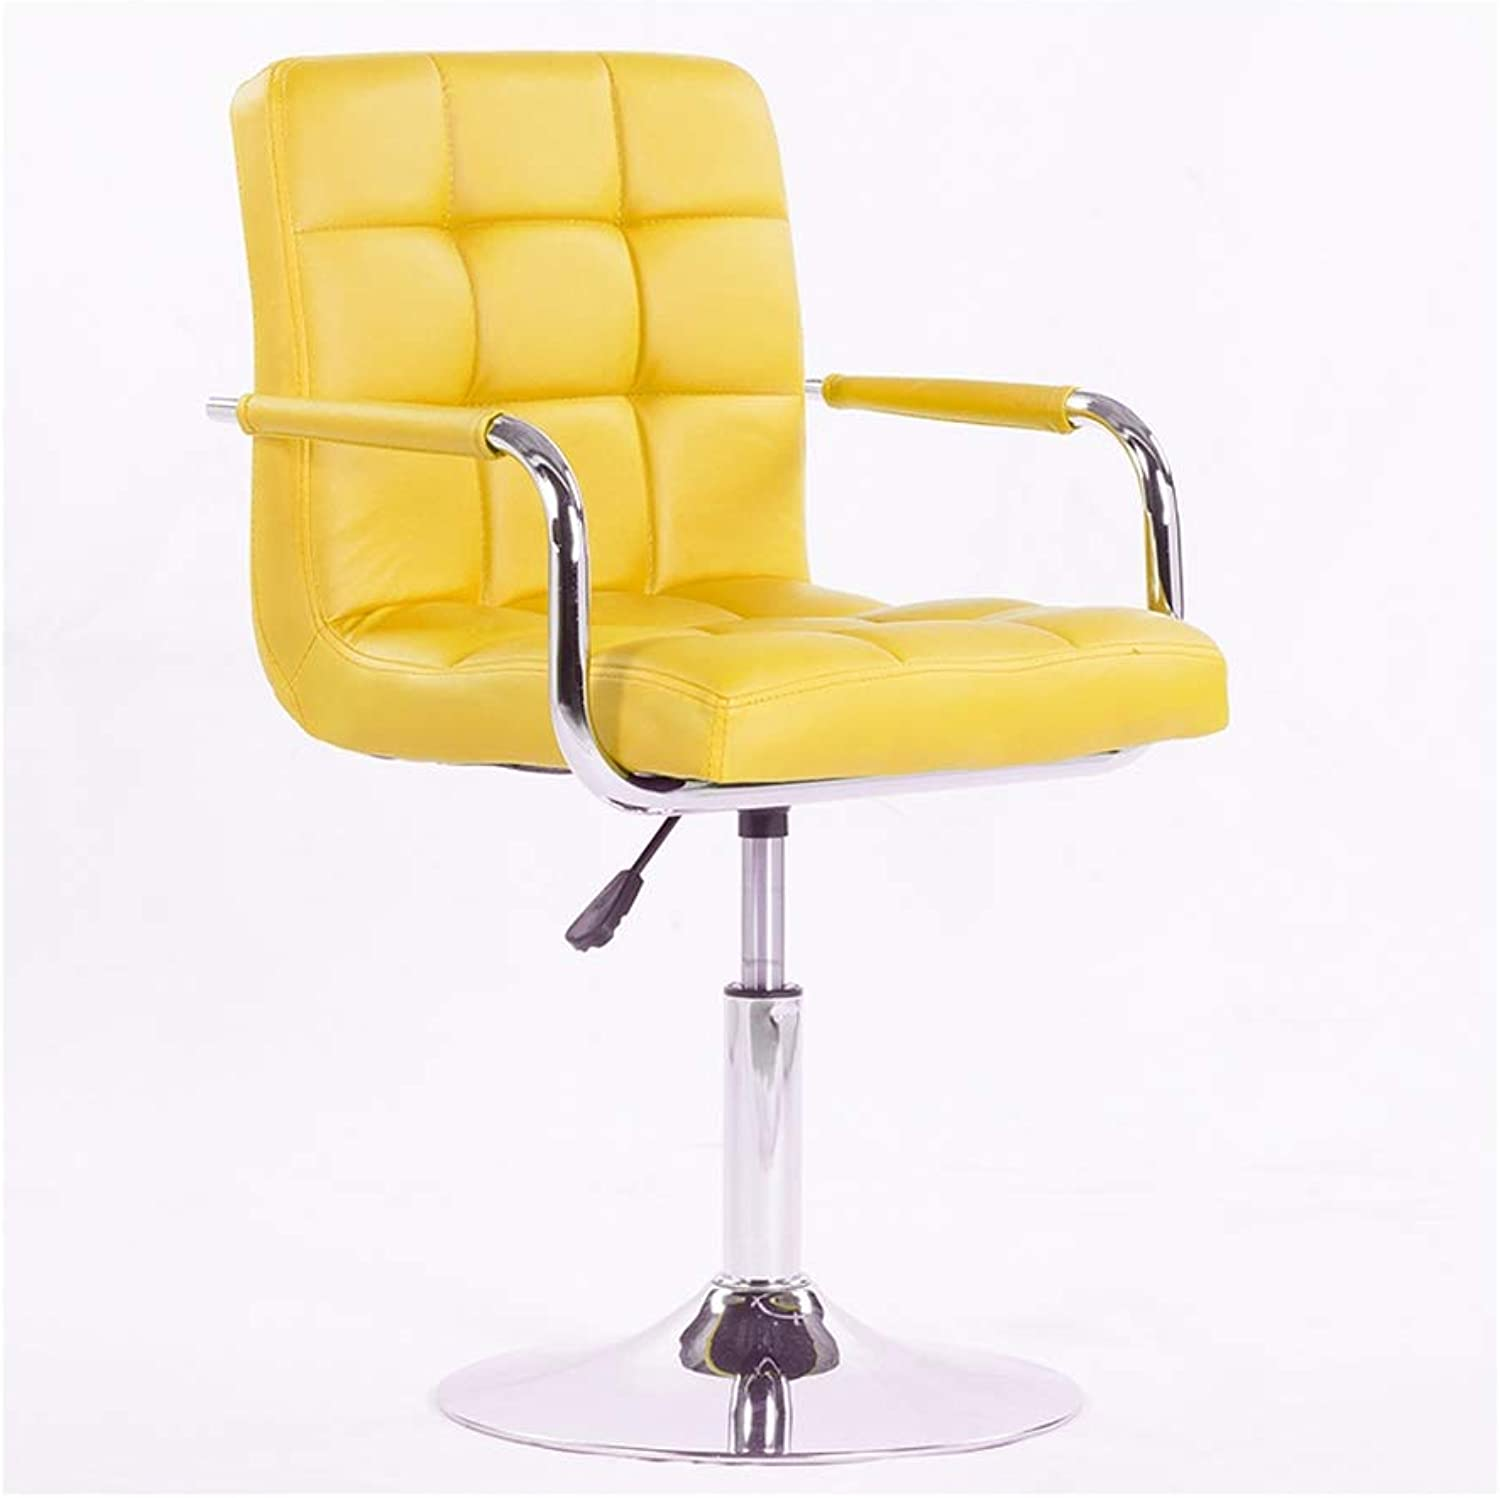 Boss Stool Home redating Back Bar Chair High Elastic Sponge Filled Computer Chair PU Leather 9 color 41cm  82-94cm (color   Yellow)